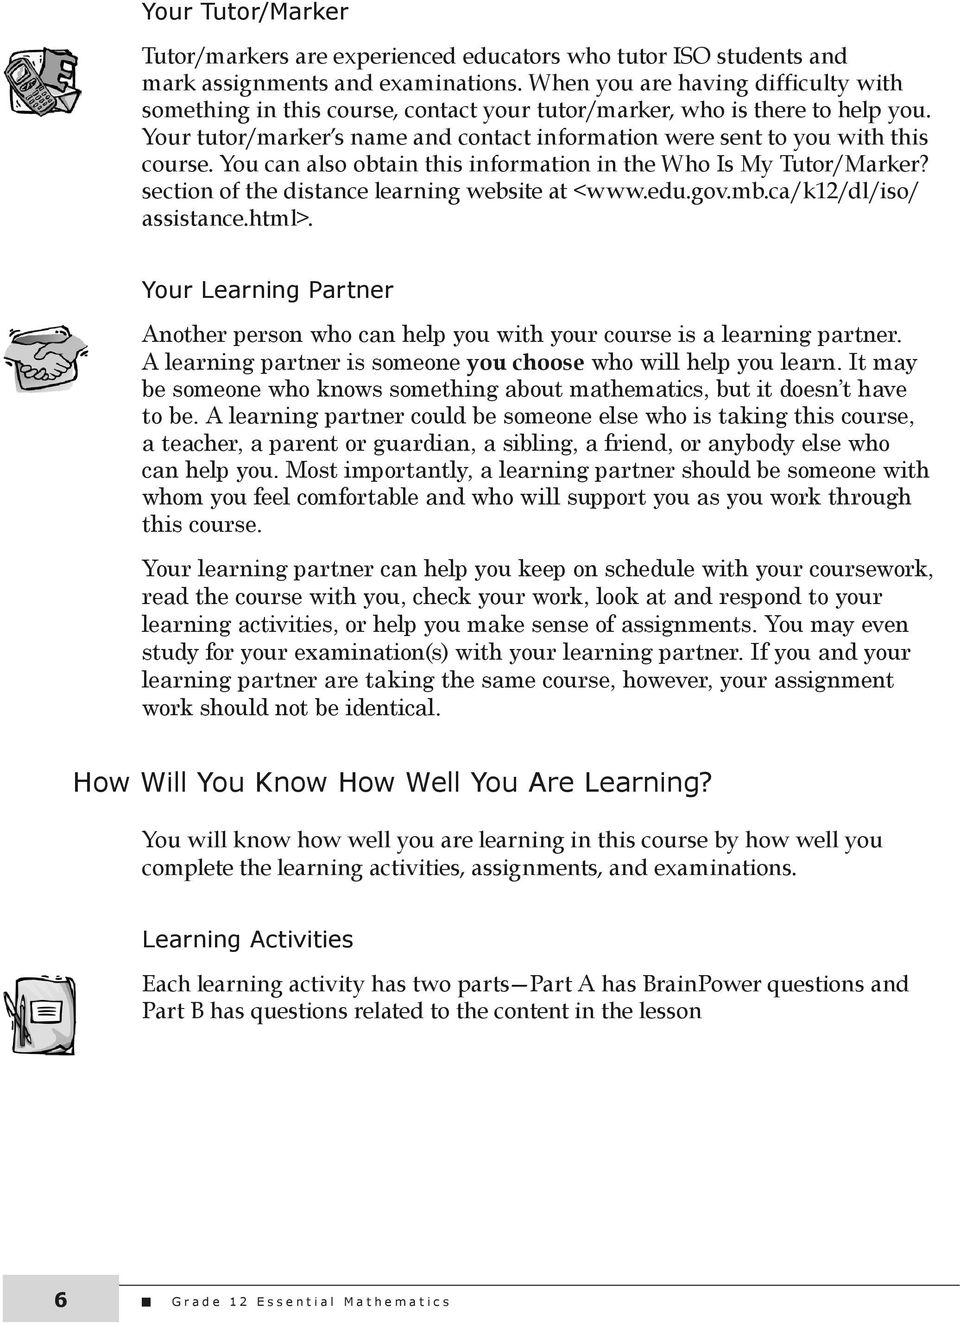 You can also obtain this information in the Who Is My Tutor/Marker? section of the distance learning website at <www.edu.gov.mb.ca/k12/dl/iso/ assistance.html>.